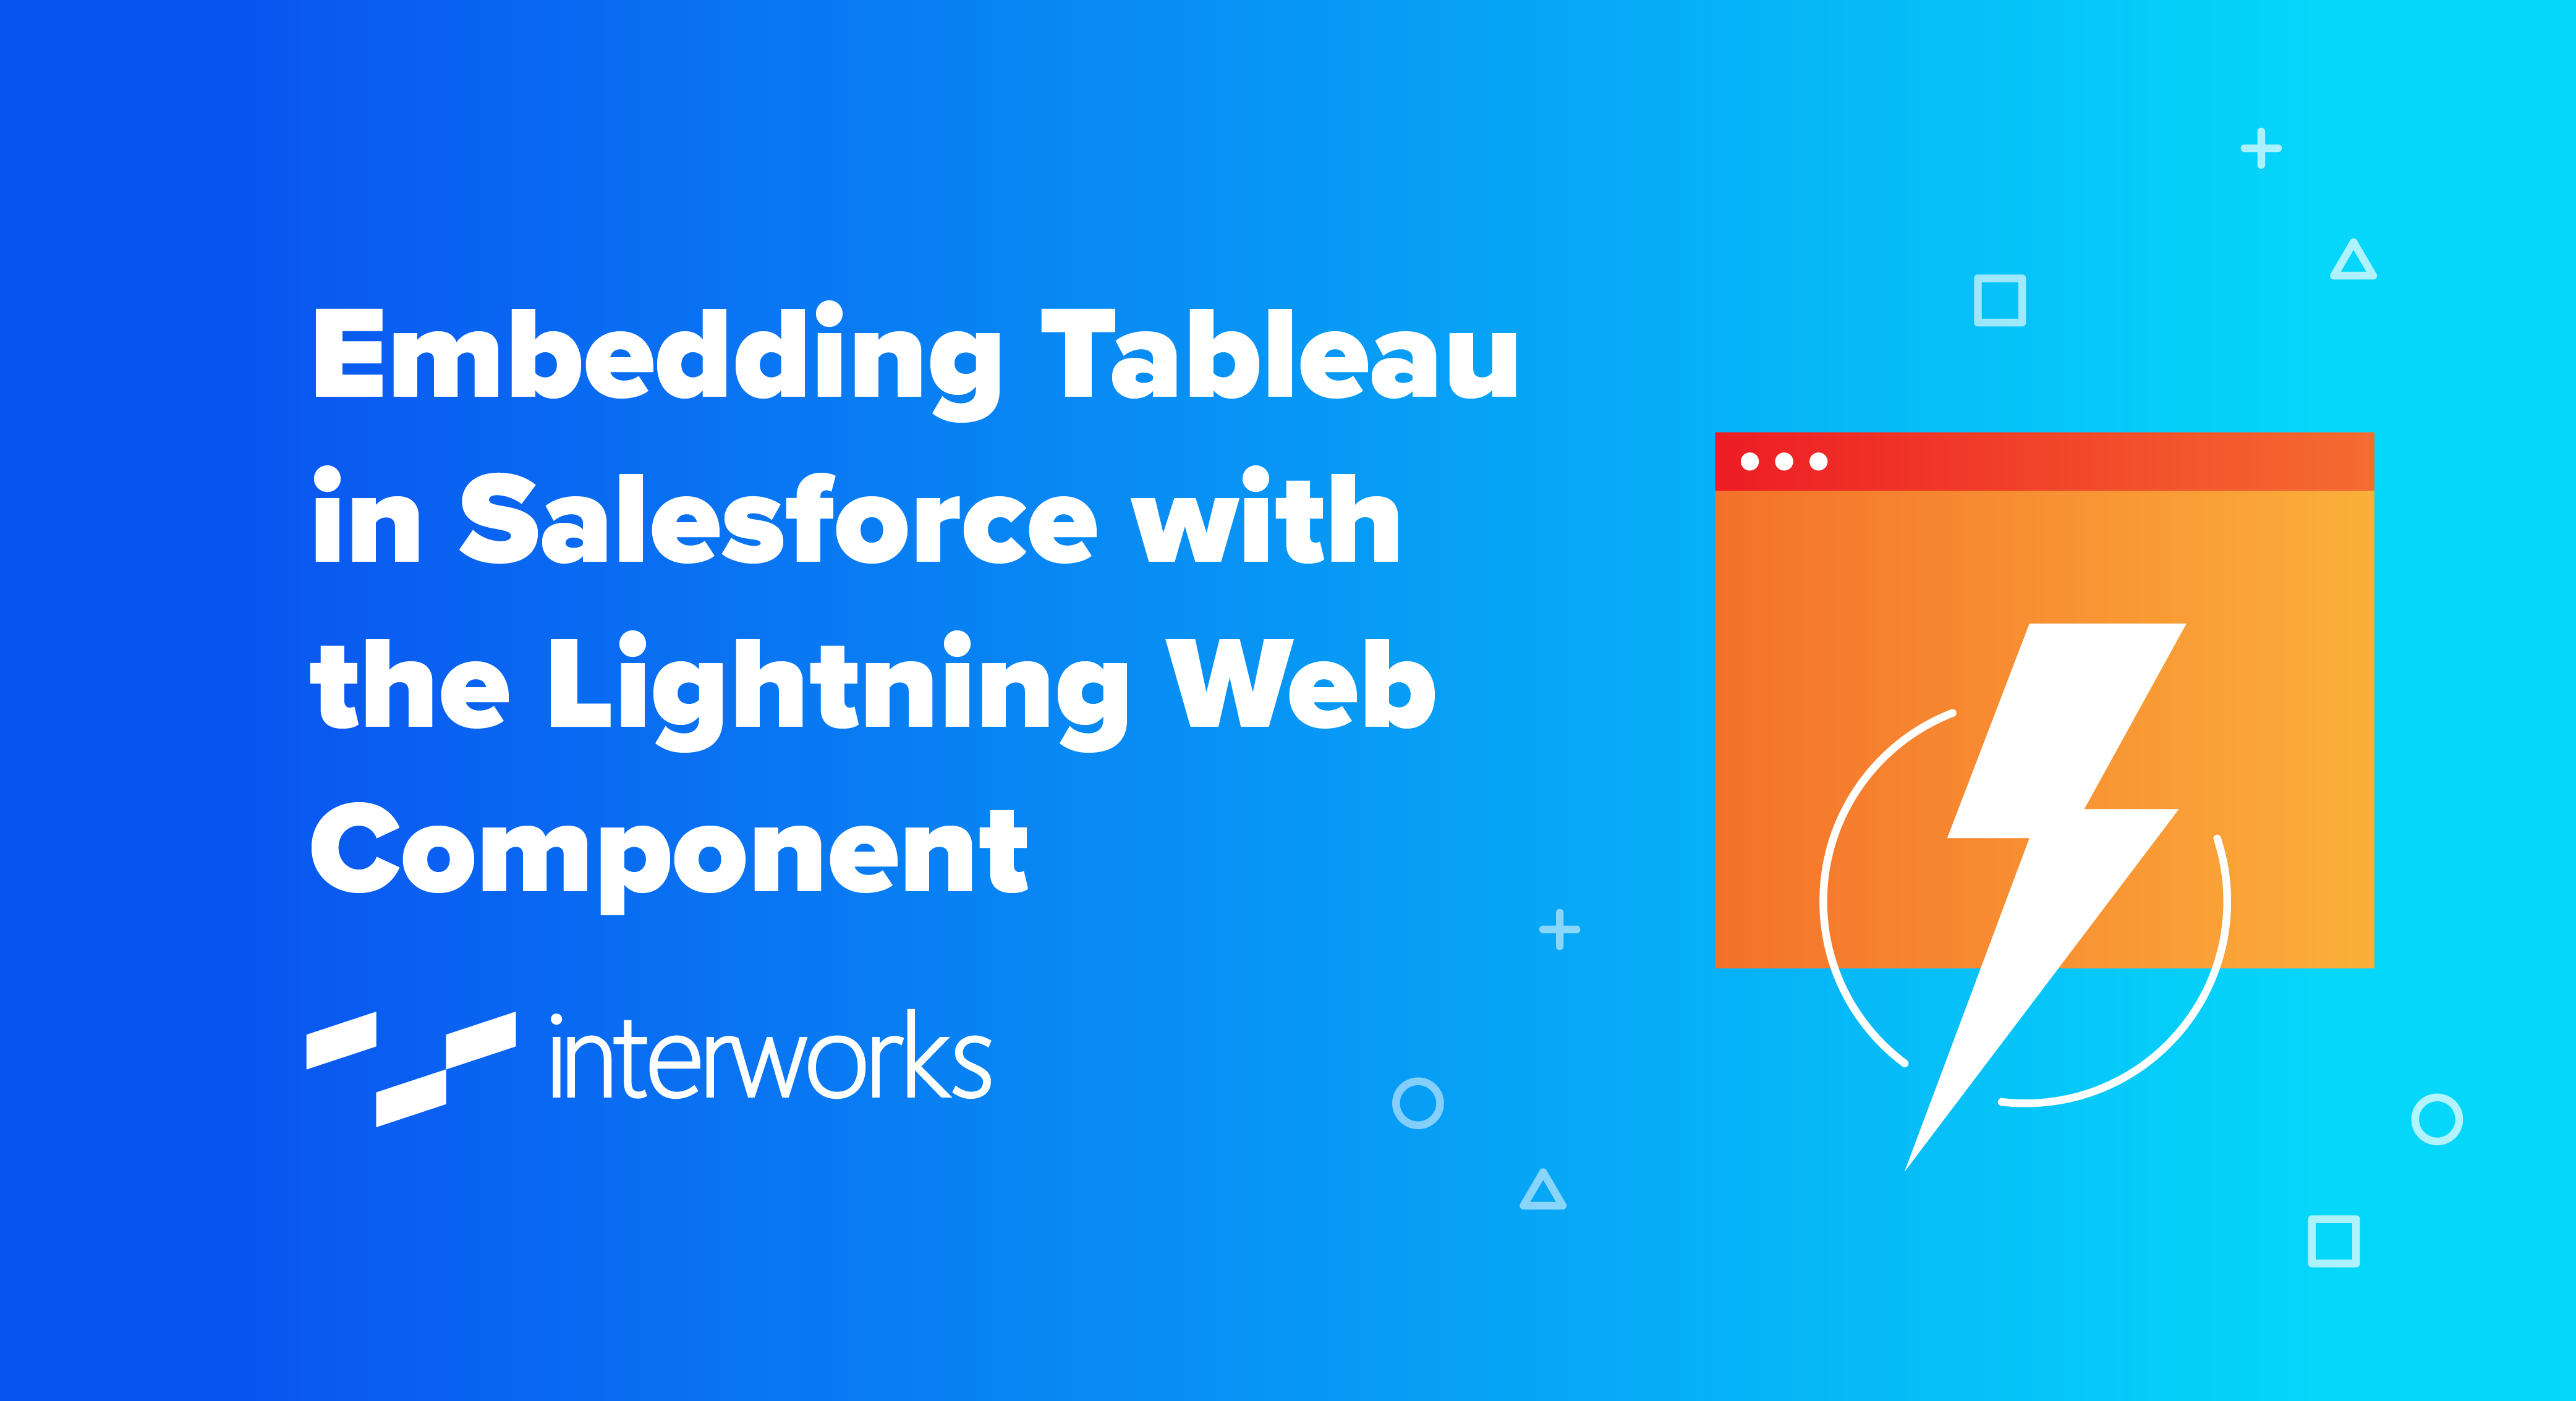 Embedding Tableau in Salesforce with the Lightning Web Component